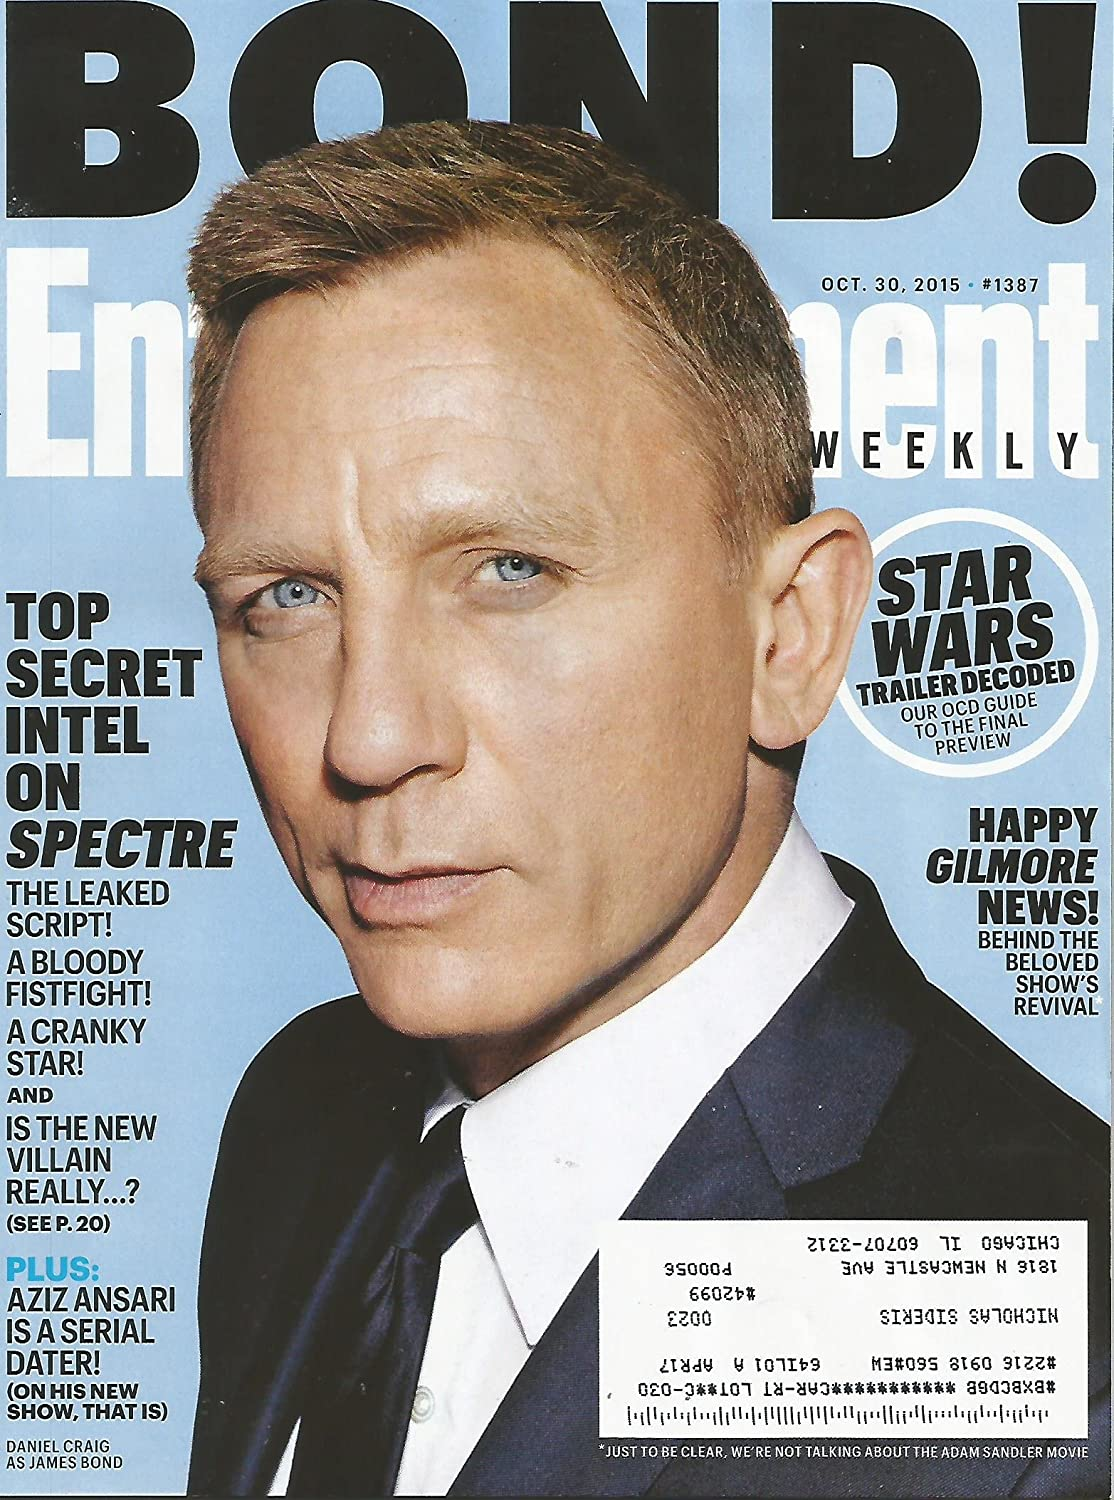 Entertainment Weekly October 30, 2015